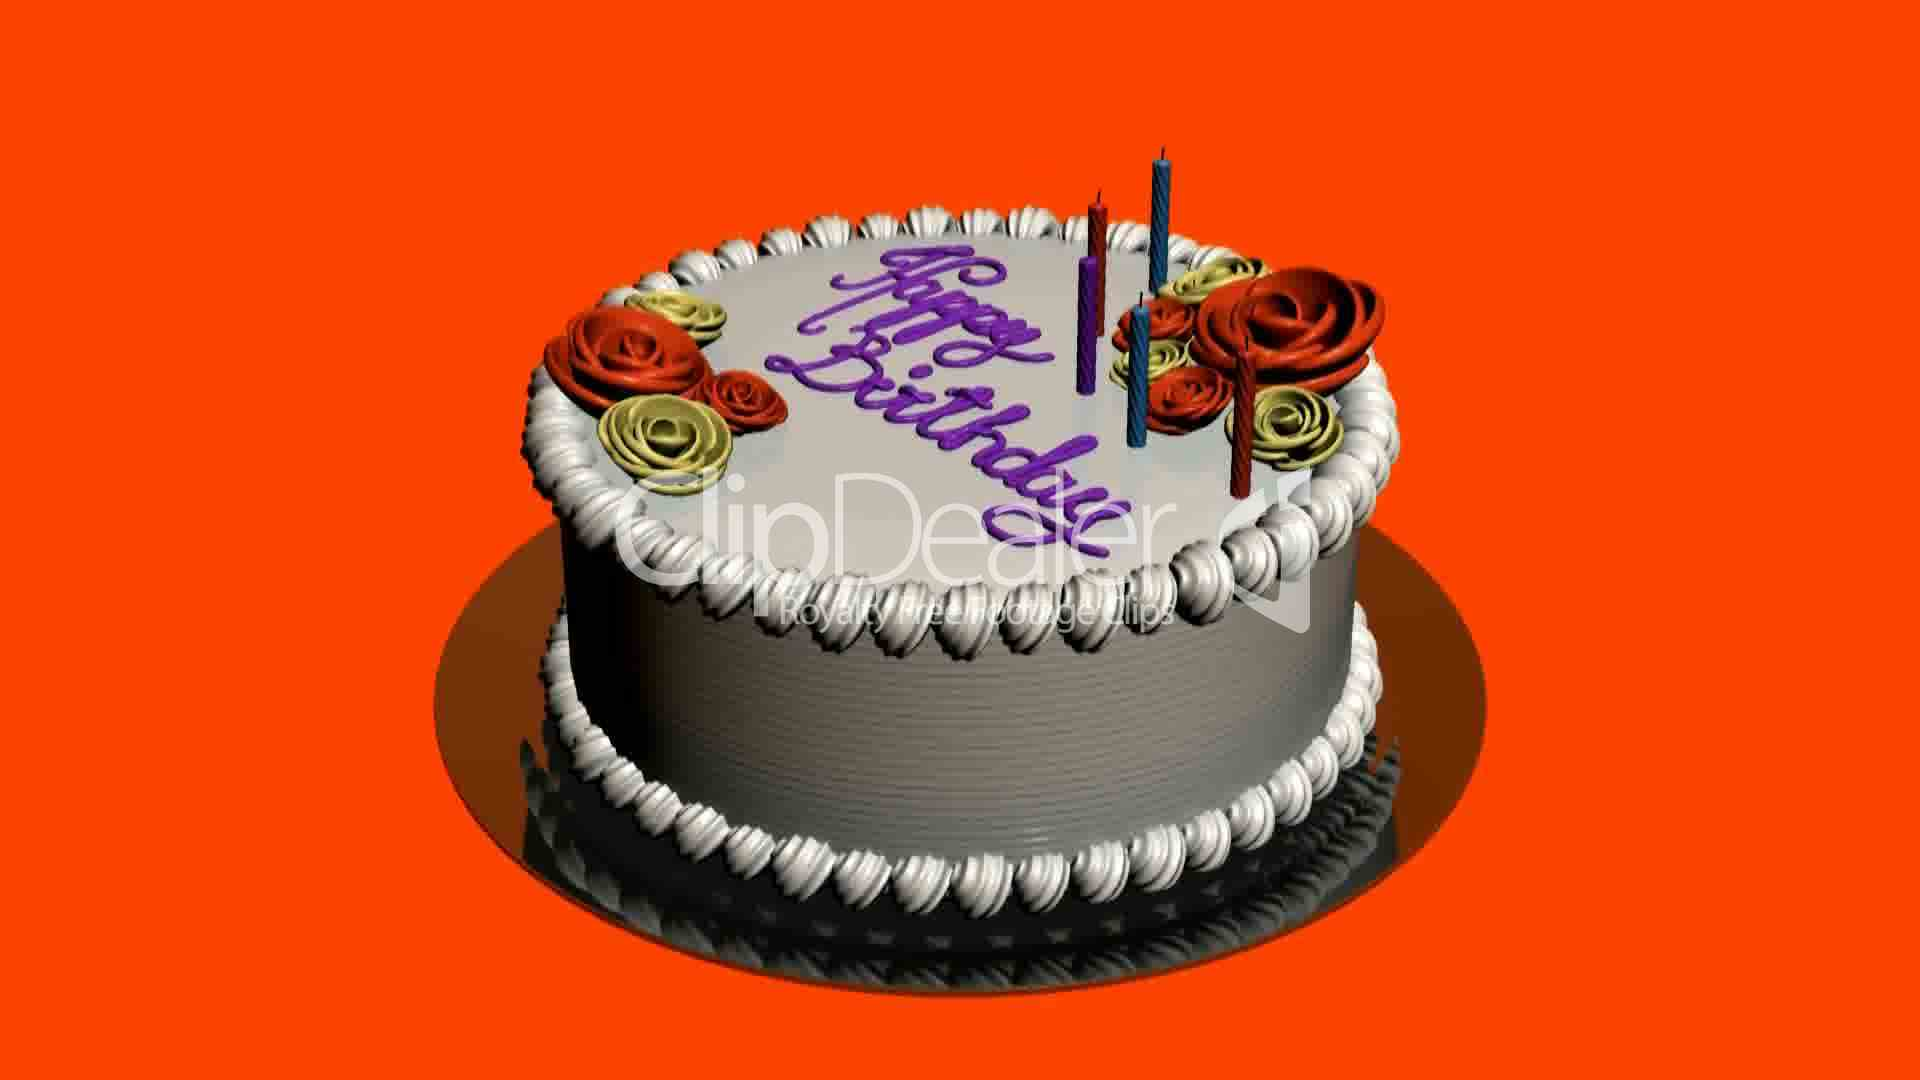 Images Of Delicious Birthday Cake : Delicious birthday cake.food,party,celebration,sweet ...